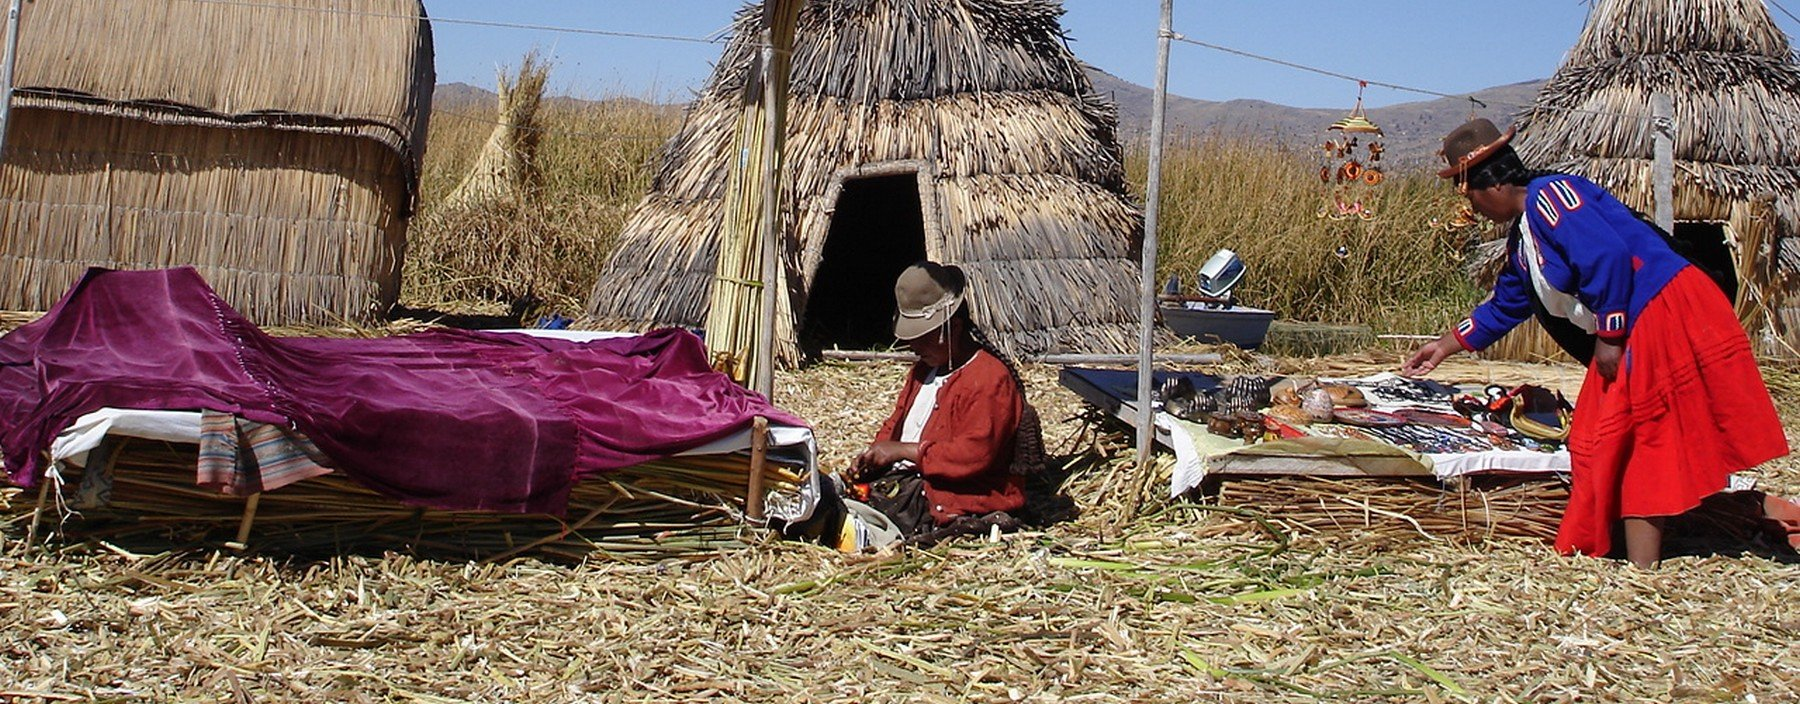 pe, titicaca lake, uros islands (6).jpg